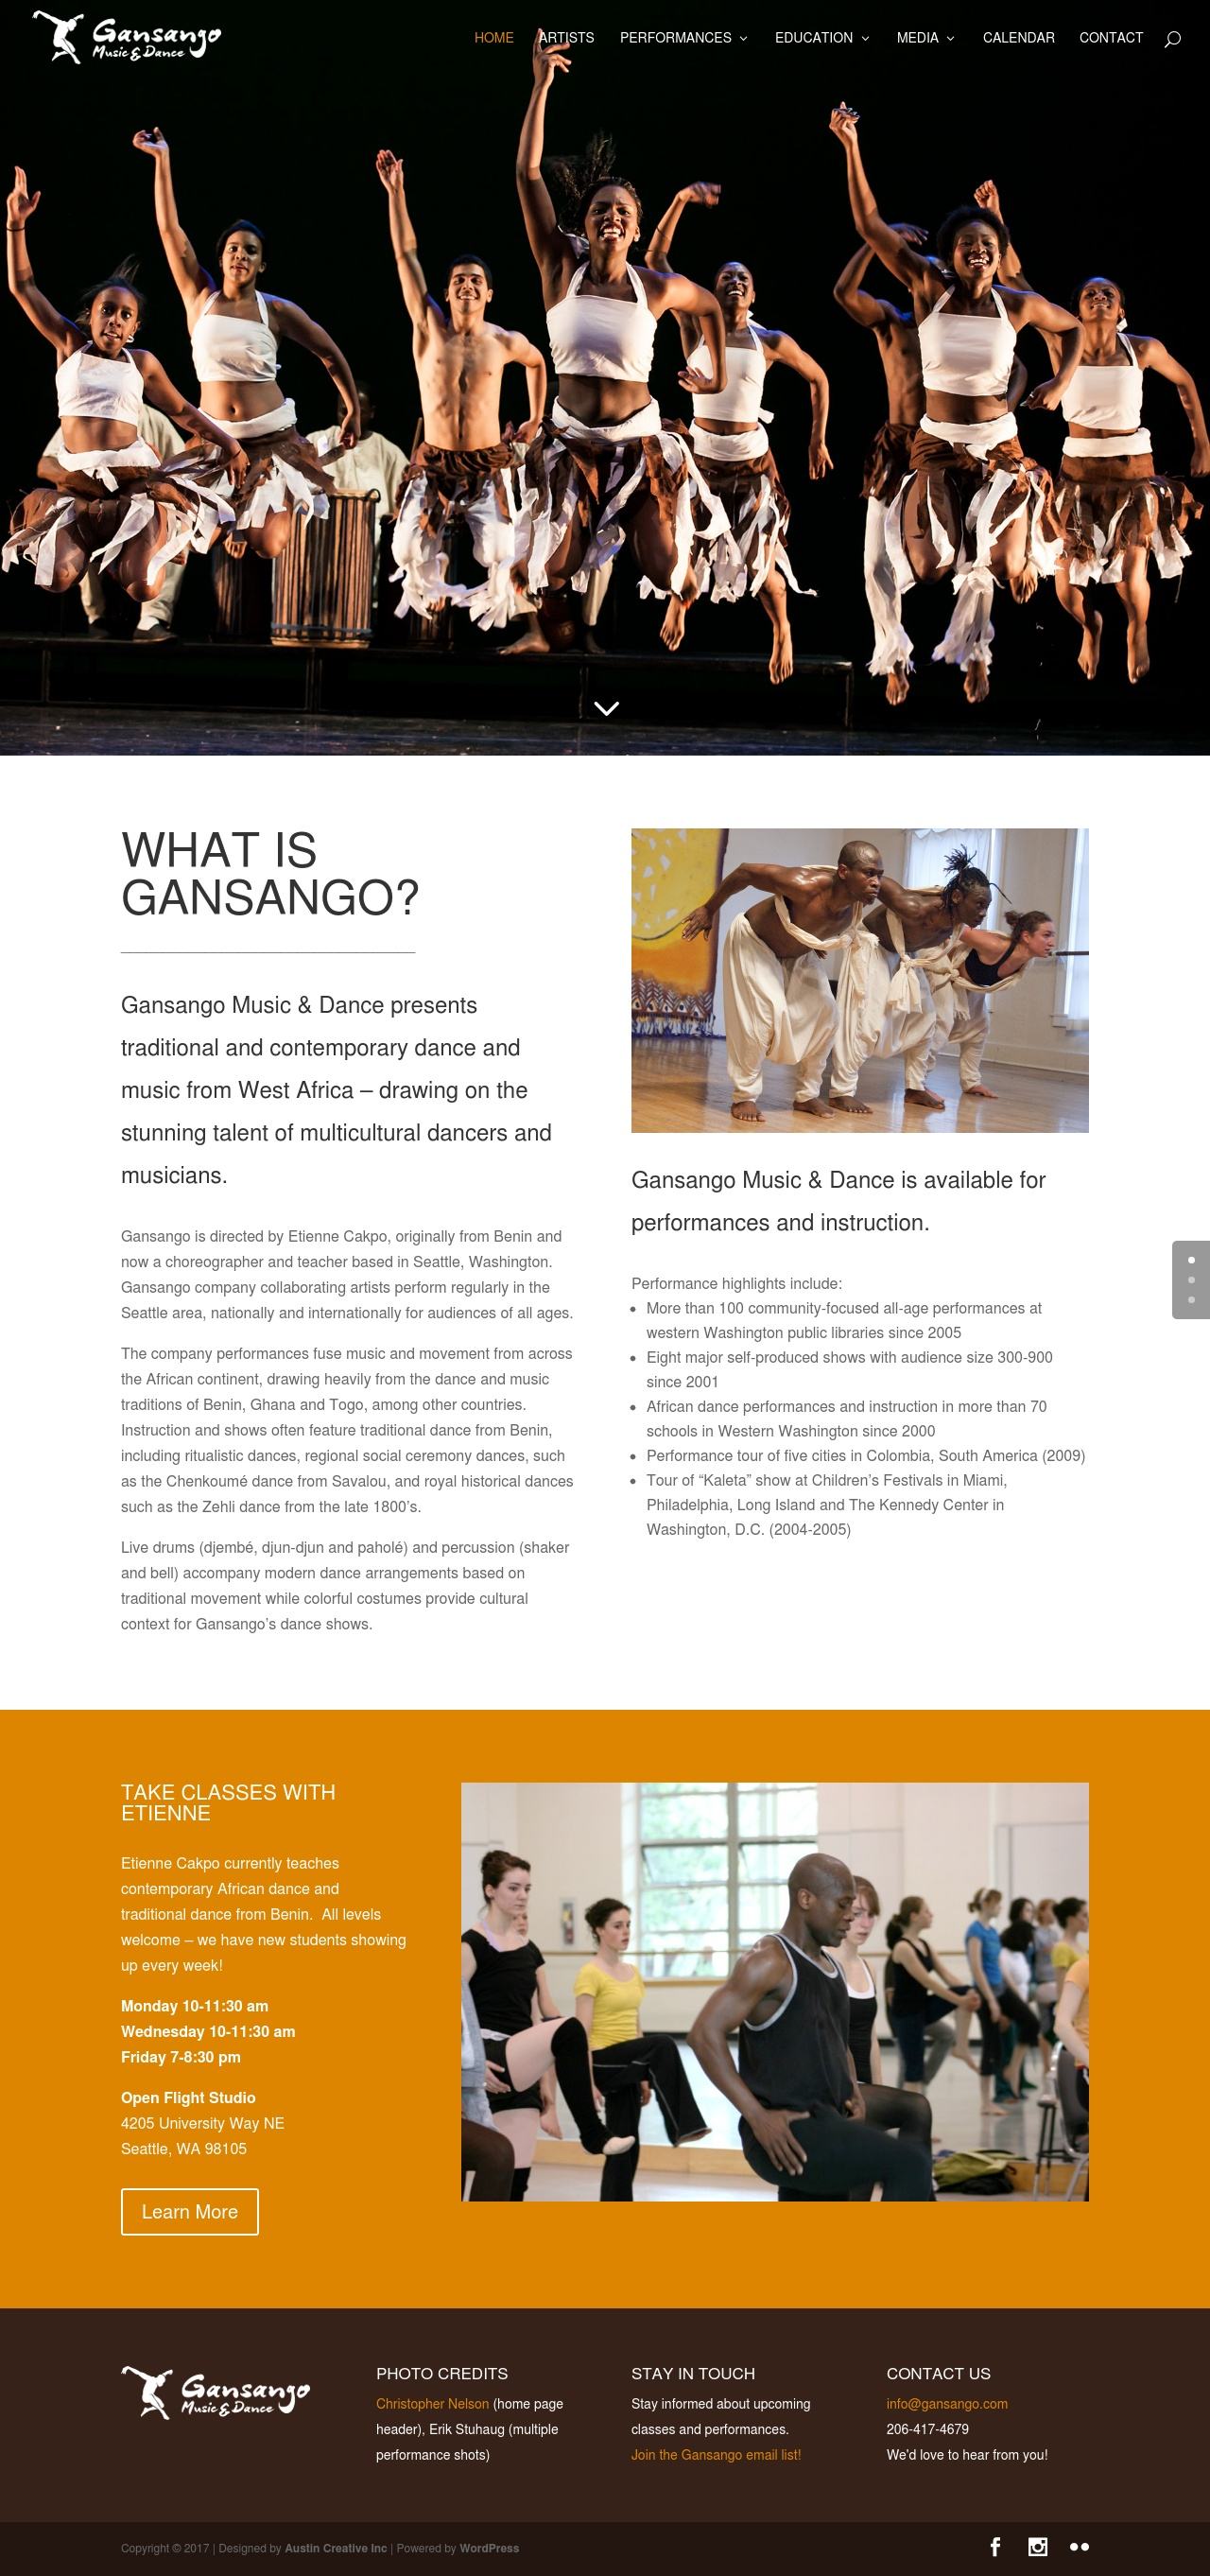 Gansango Music & Dance Website Screenshot